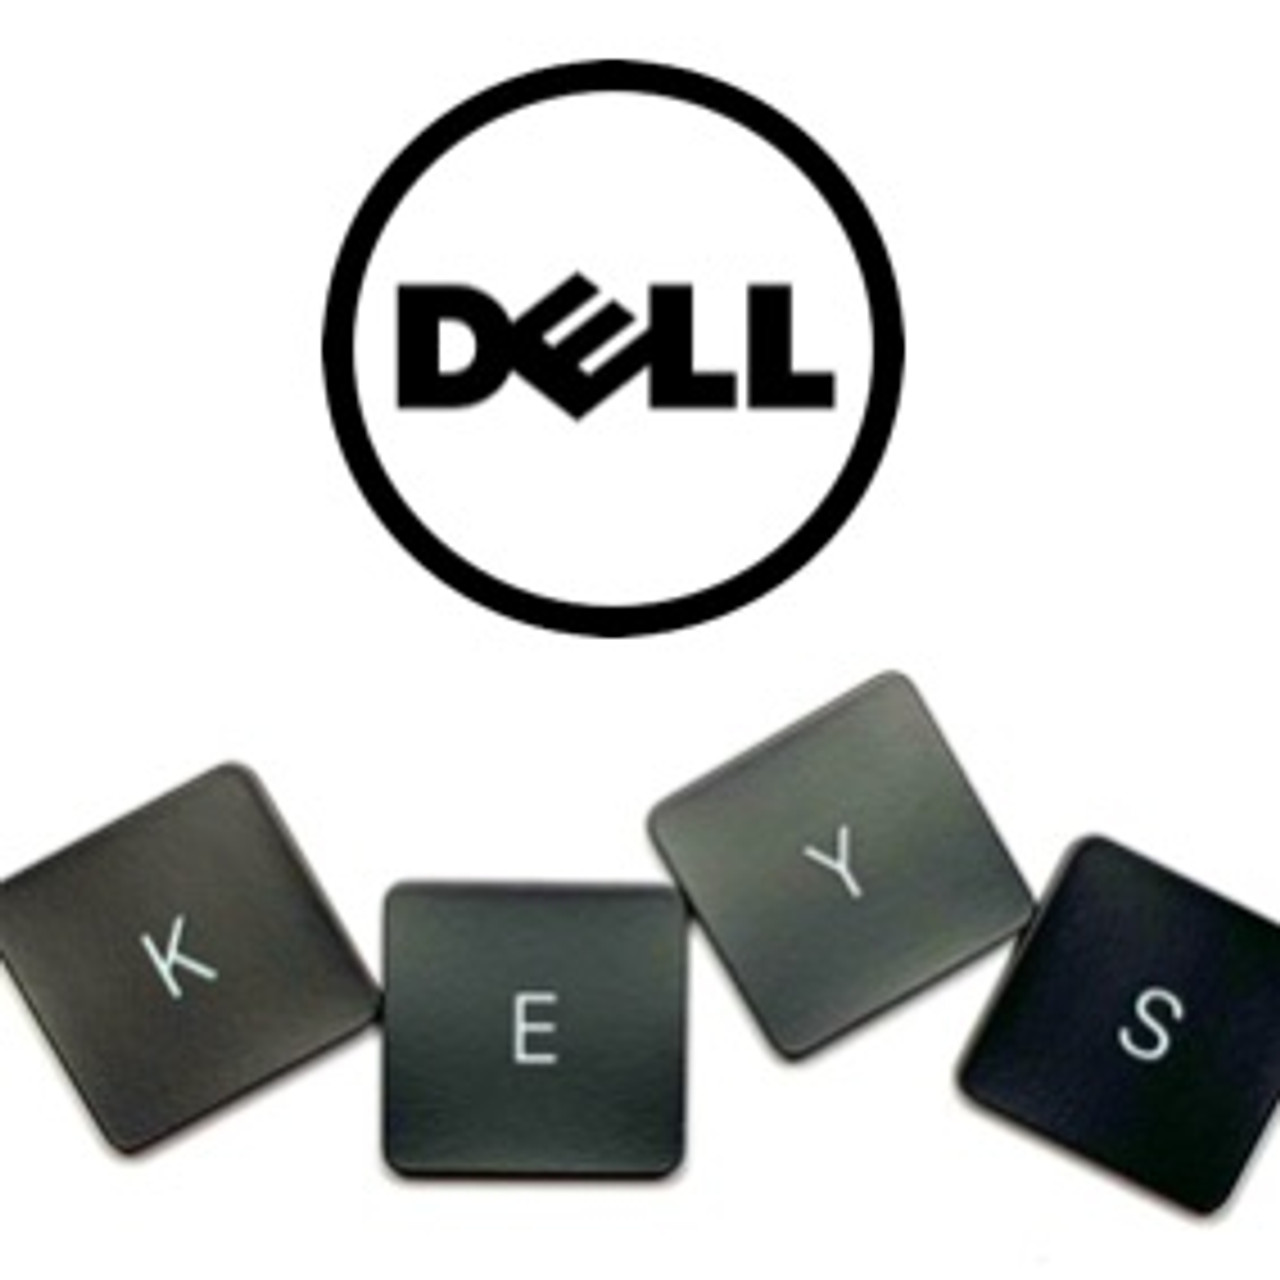 Dell Latitude E5530 Laptop Keyboard Key Replacement